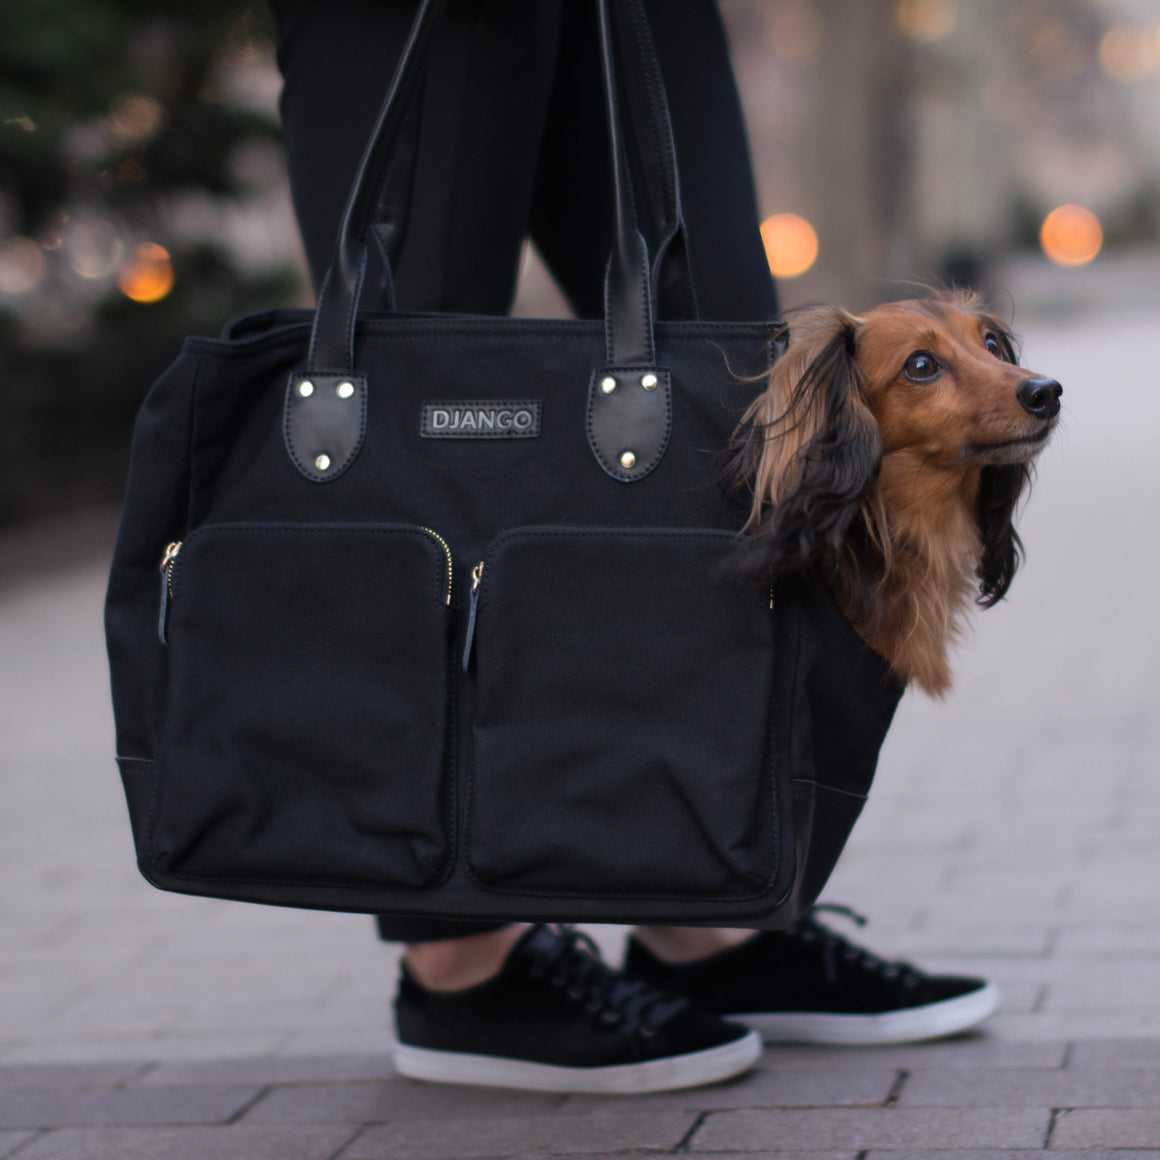 DJANGO Dog Carrier Bag - Waxed Canvas & Leather Dog Carry Bag - Black